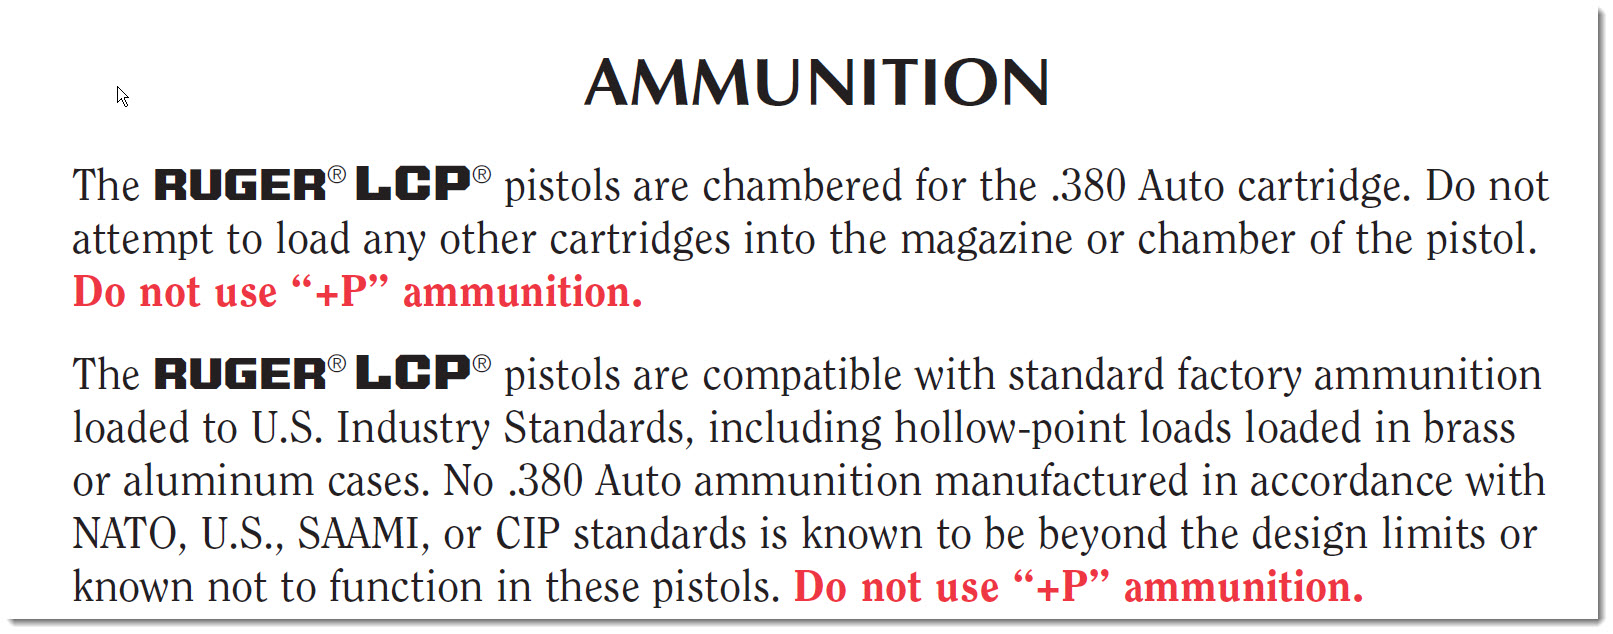 What ammo do your recommend for an LCP?-7-11-2013-10-33-20-am.jpg